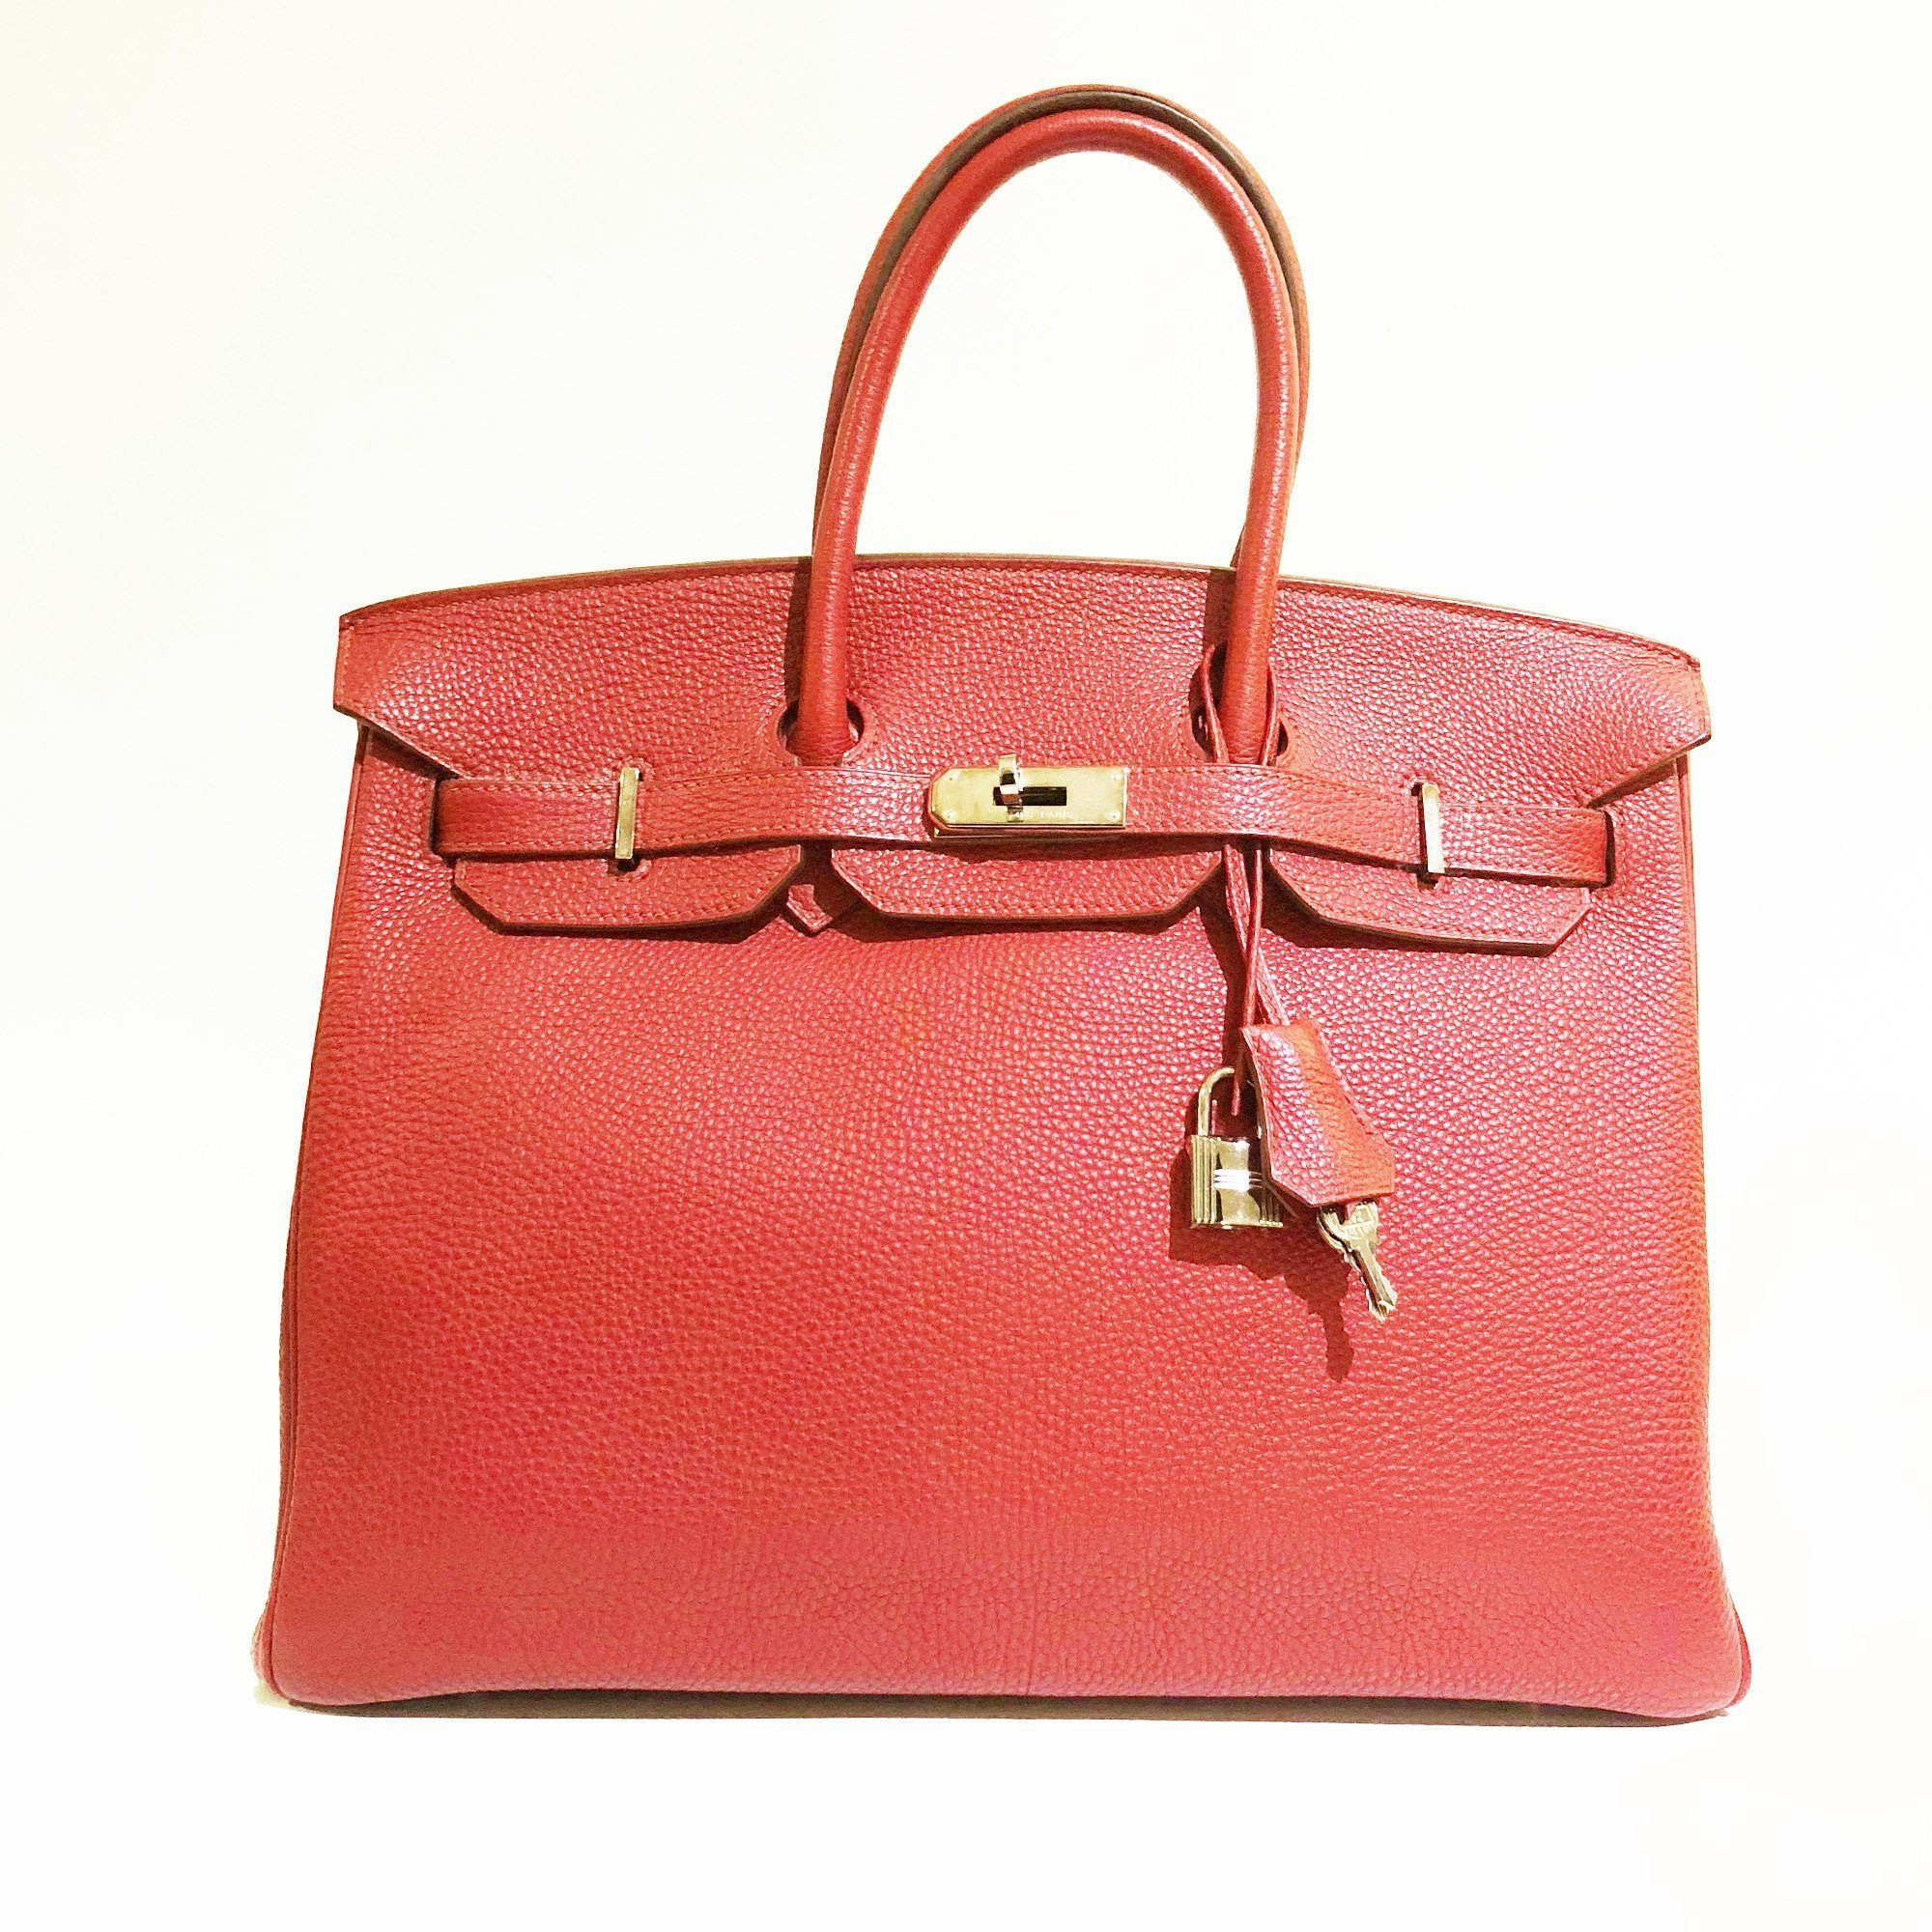 a03a13e5c9e3 Hermes Birkin 35 Red Togo Leather Bag – Garderobe